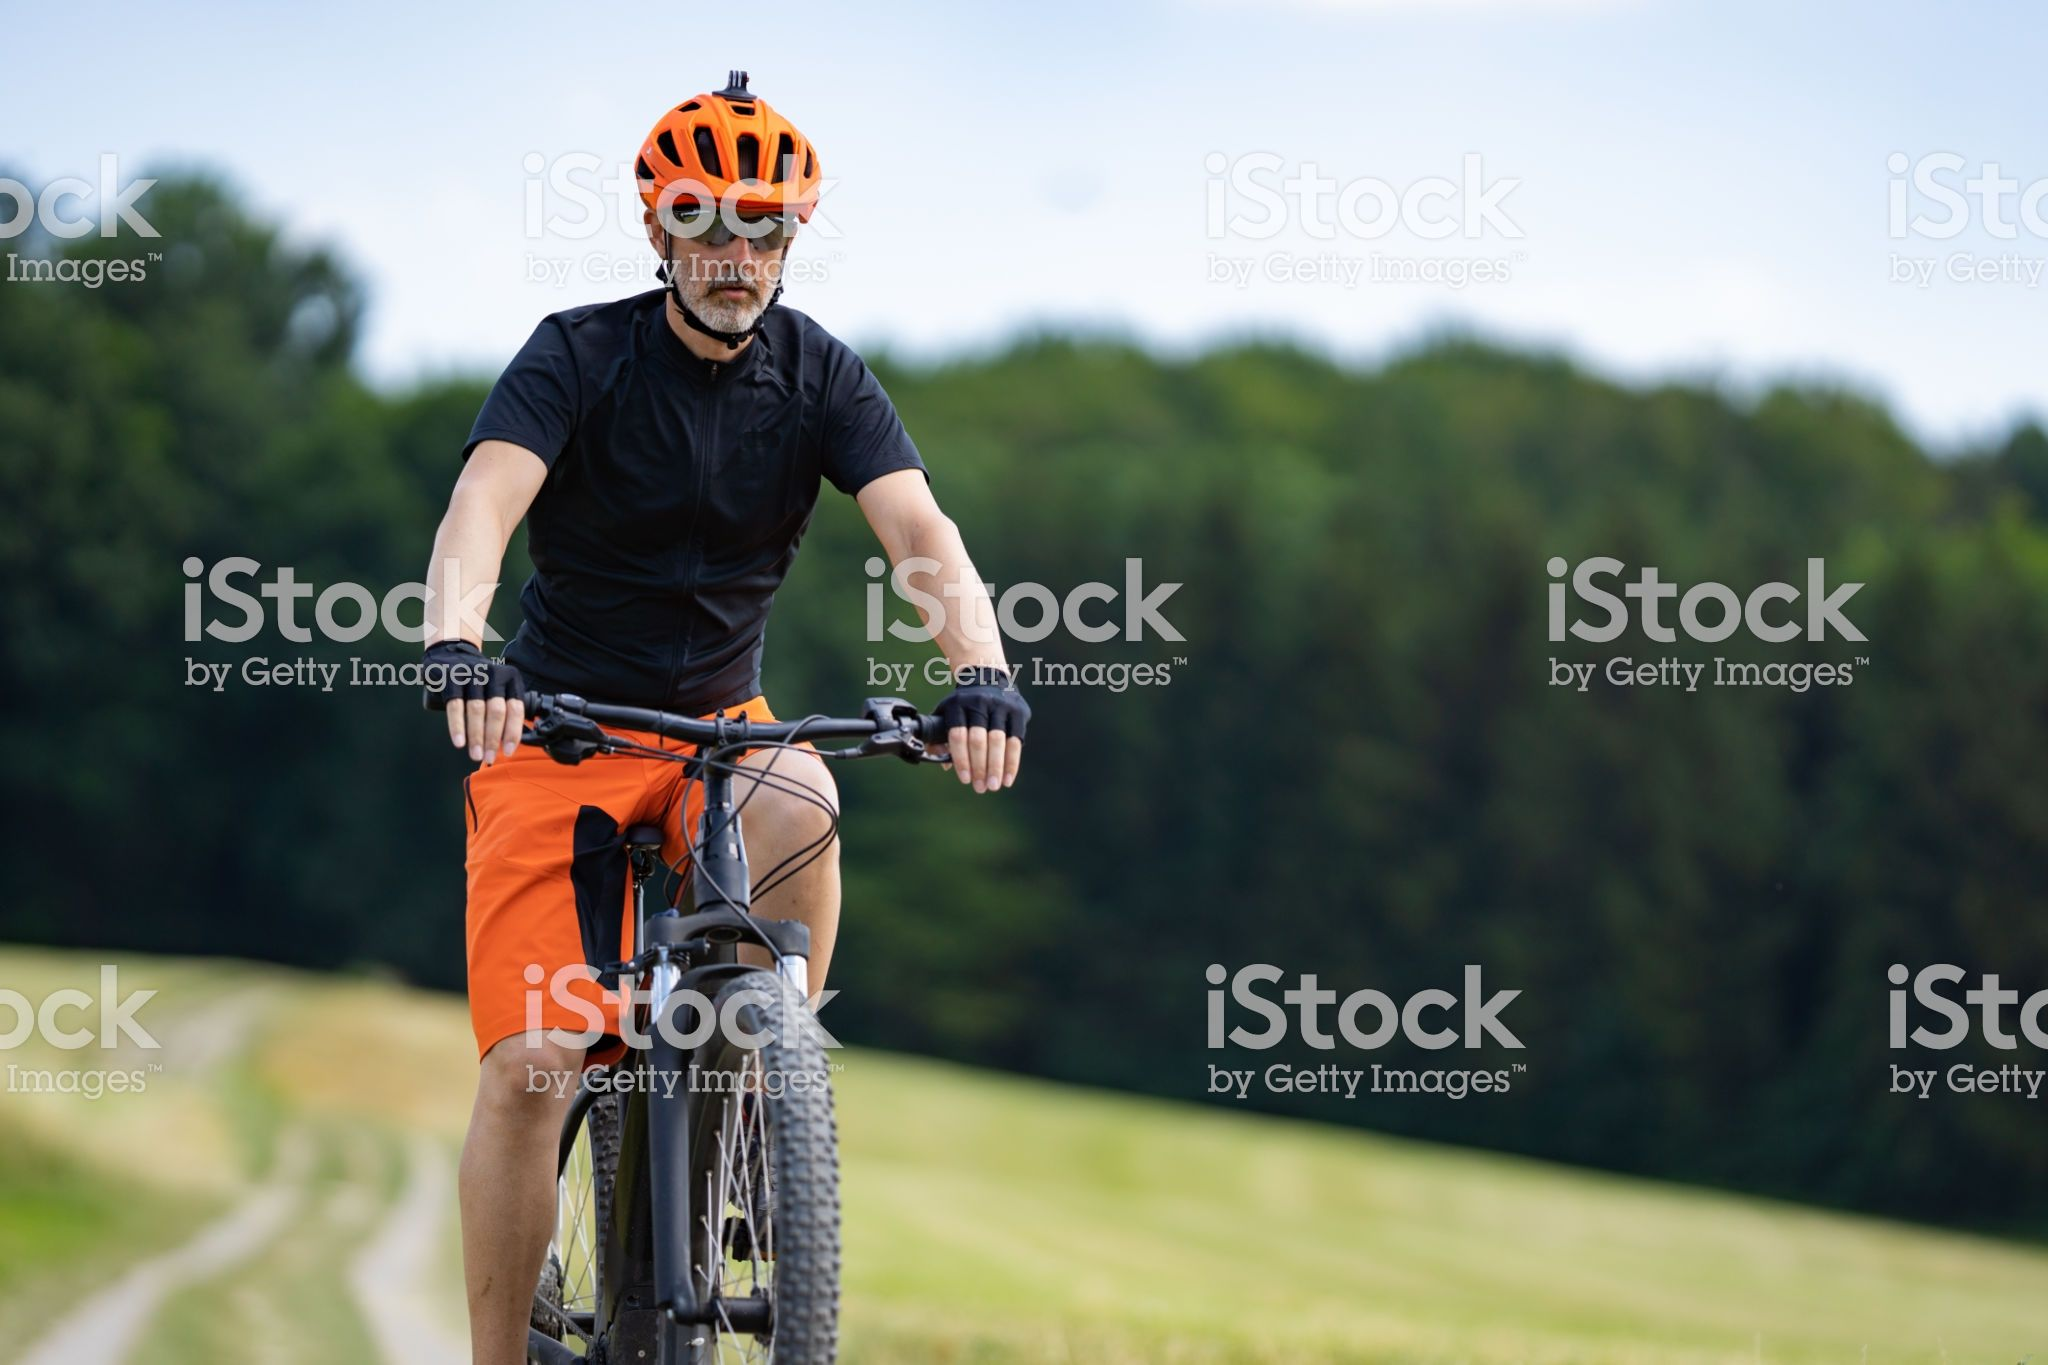 46 Years Old Fit Man With Bike Helmet Biking Outdoors In Rural